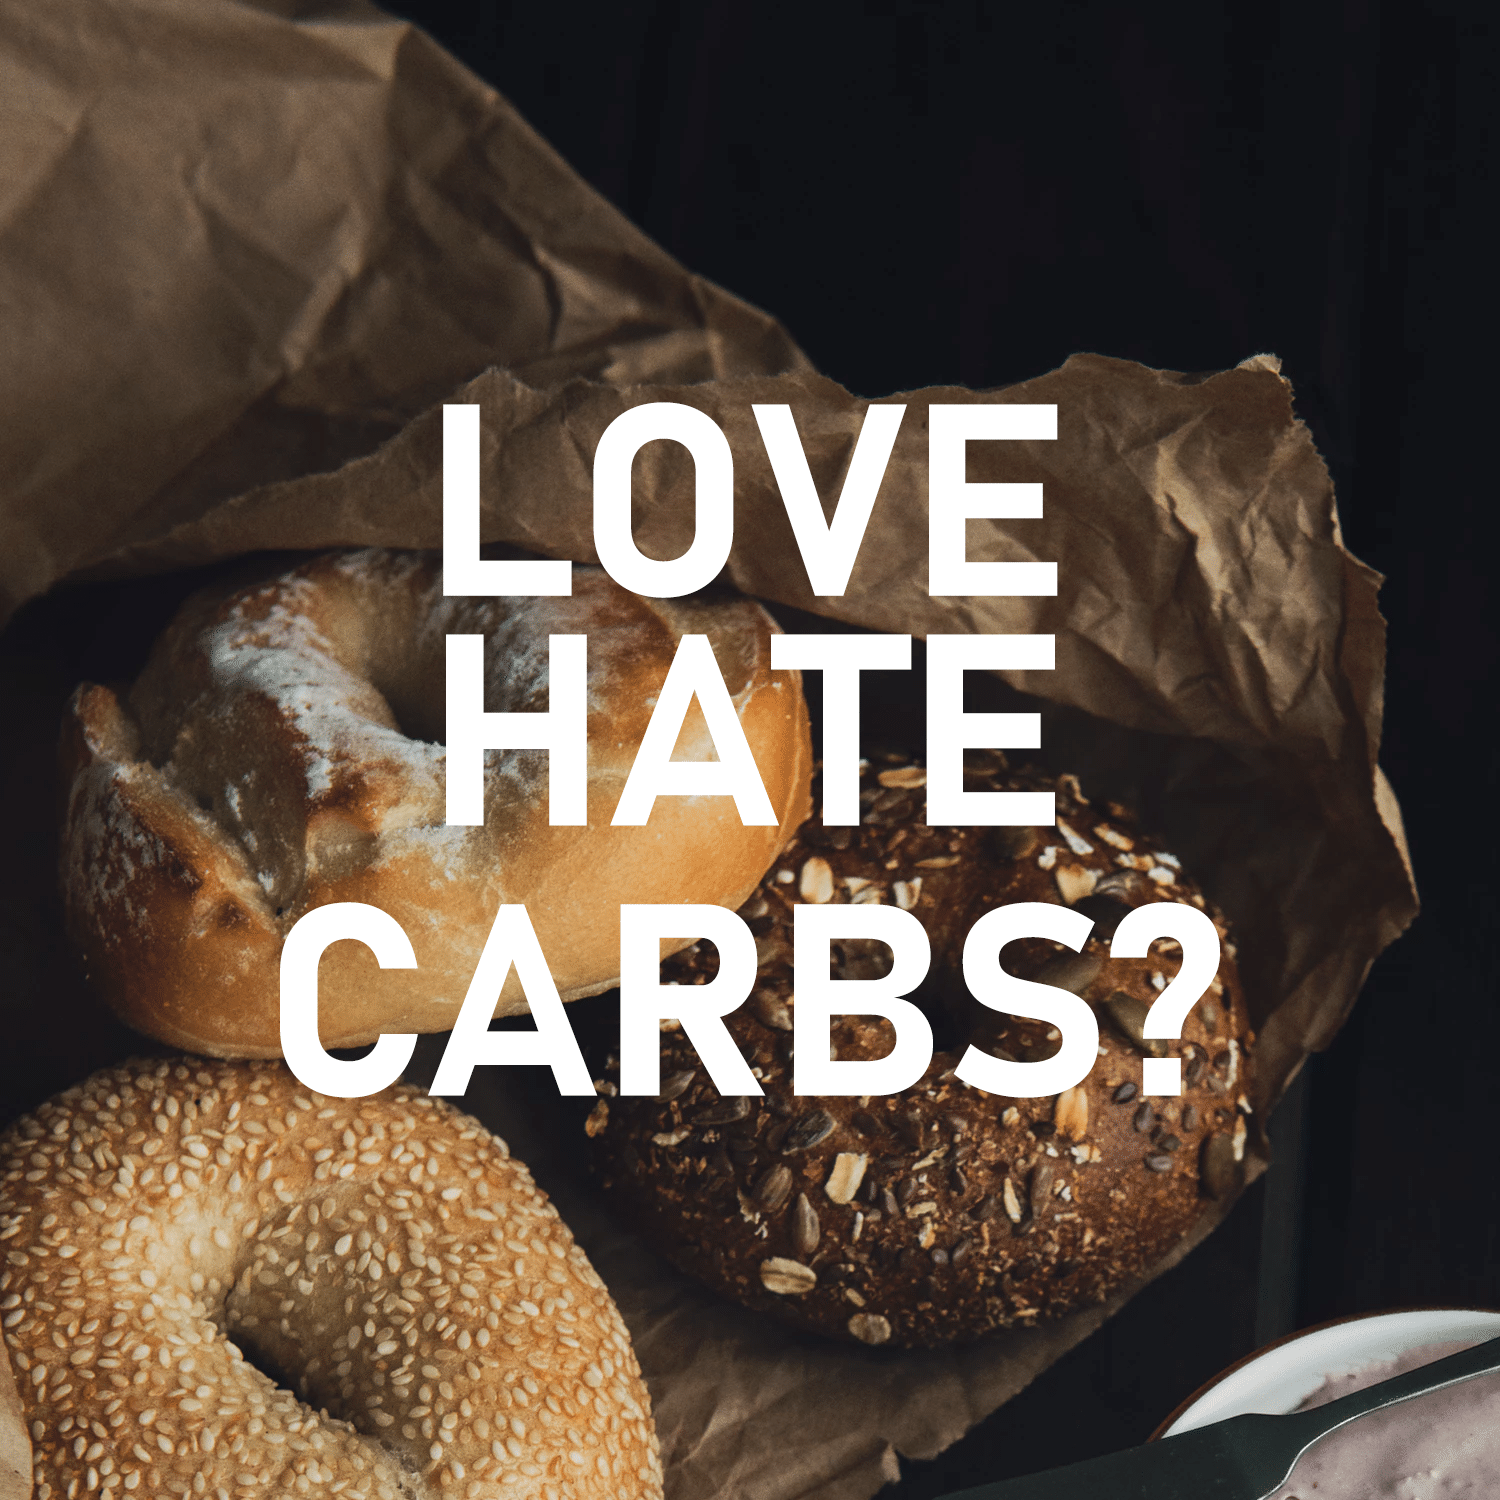 I Can't Eat Carbohydrates, They Make You Fat